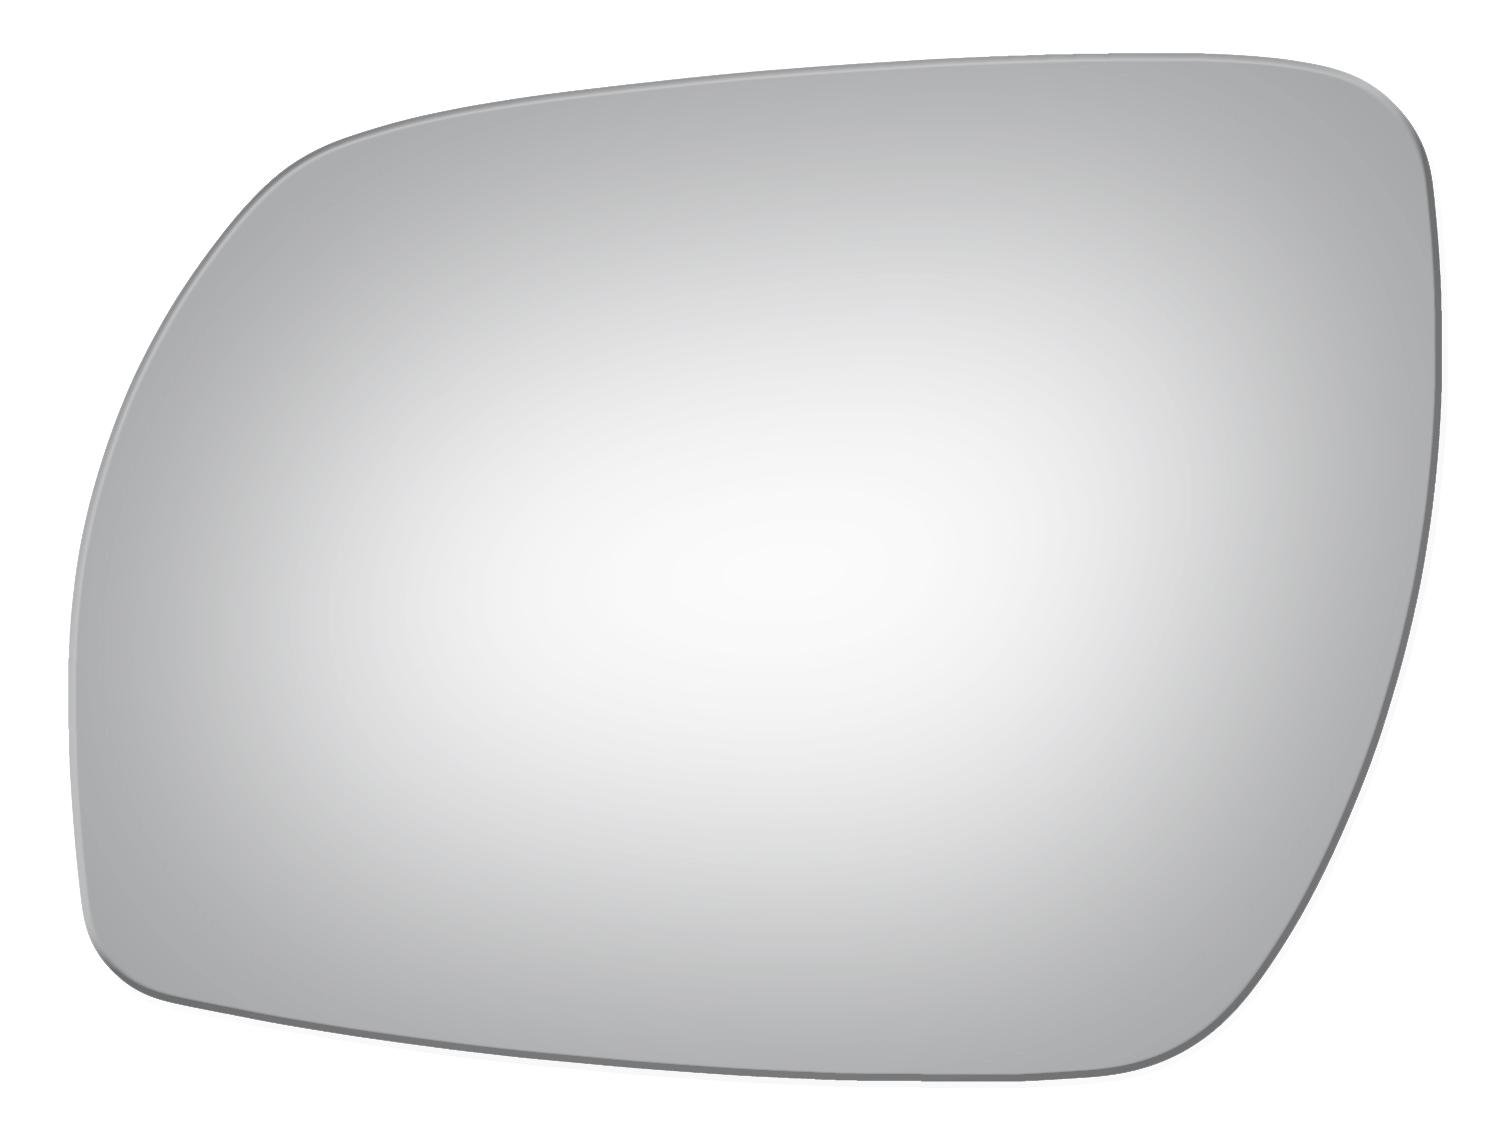 2003-2007 NISSAN MURANO Driver Side Replacement Mirror Glass Burco